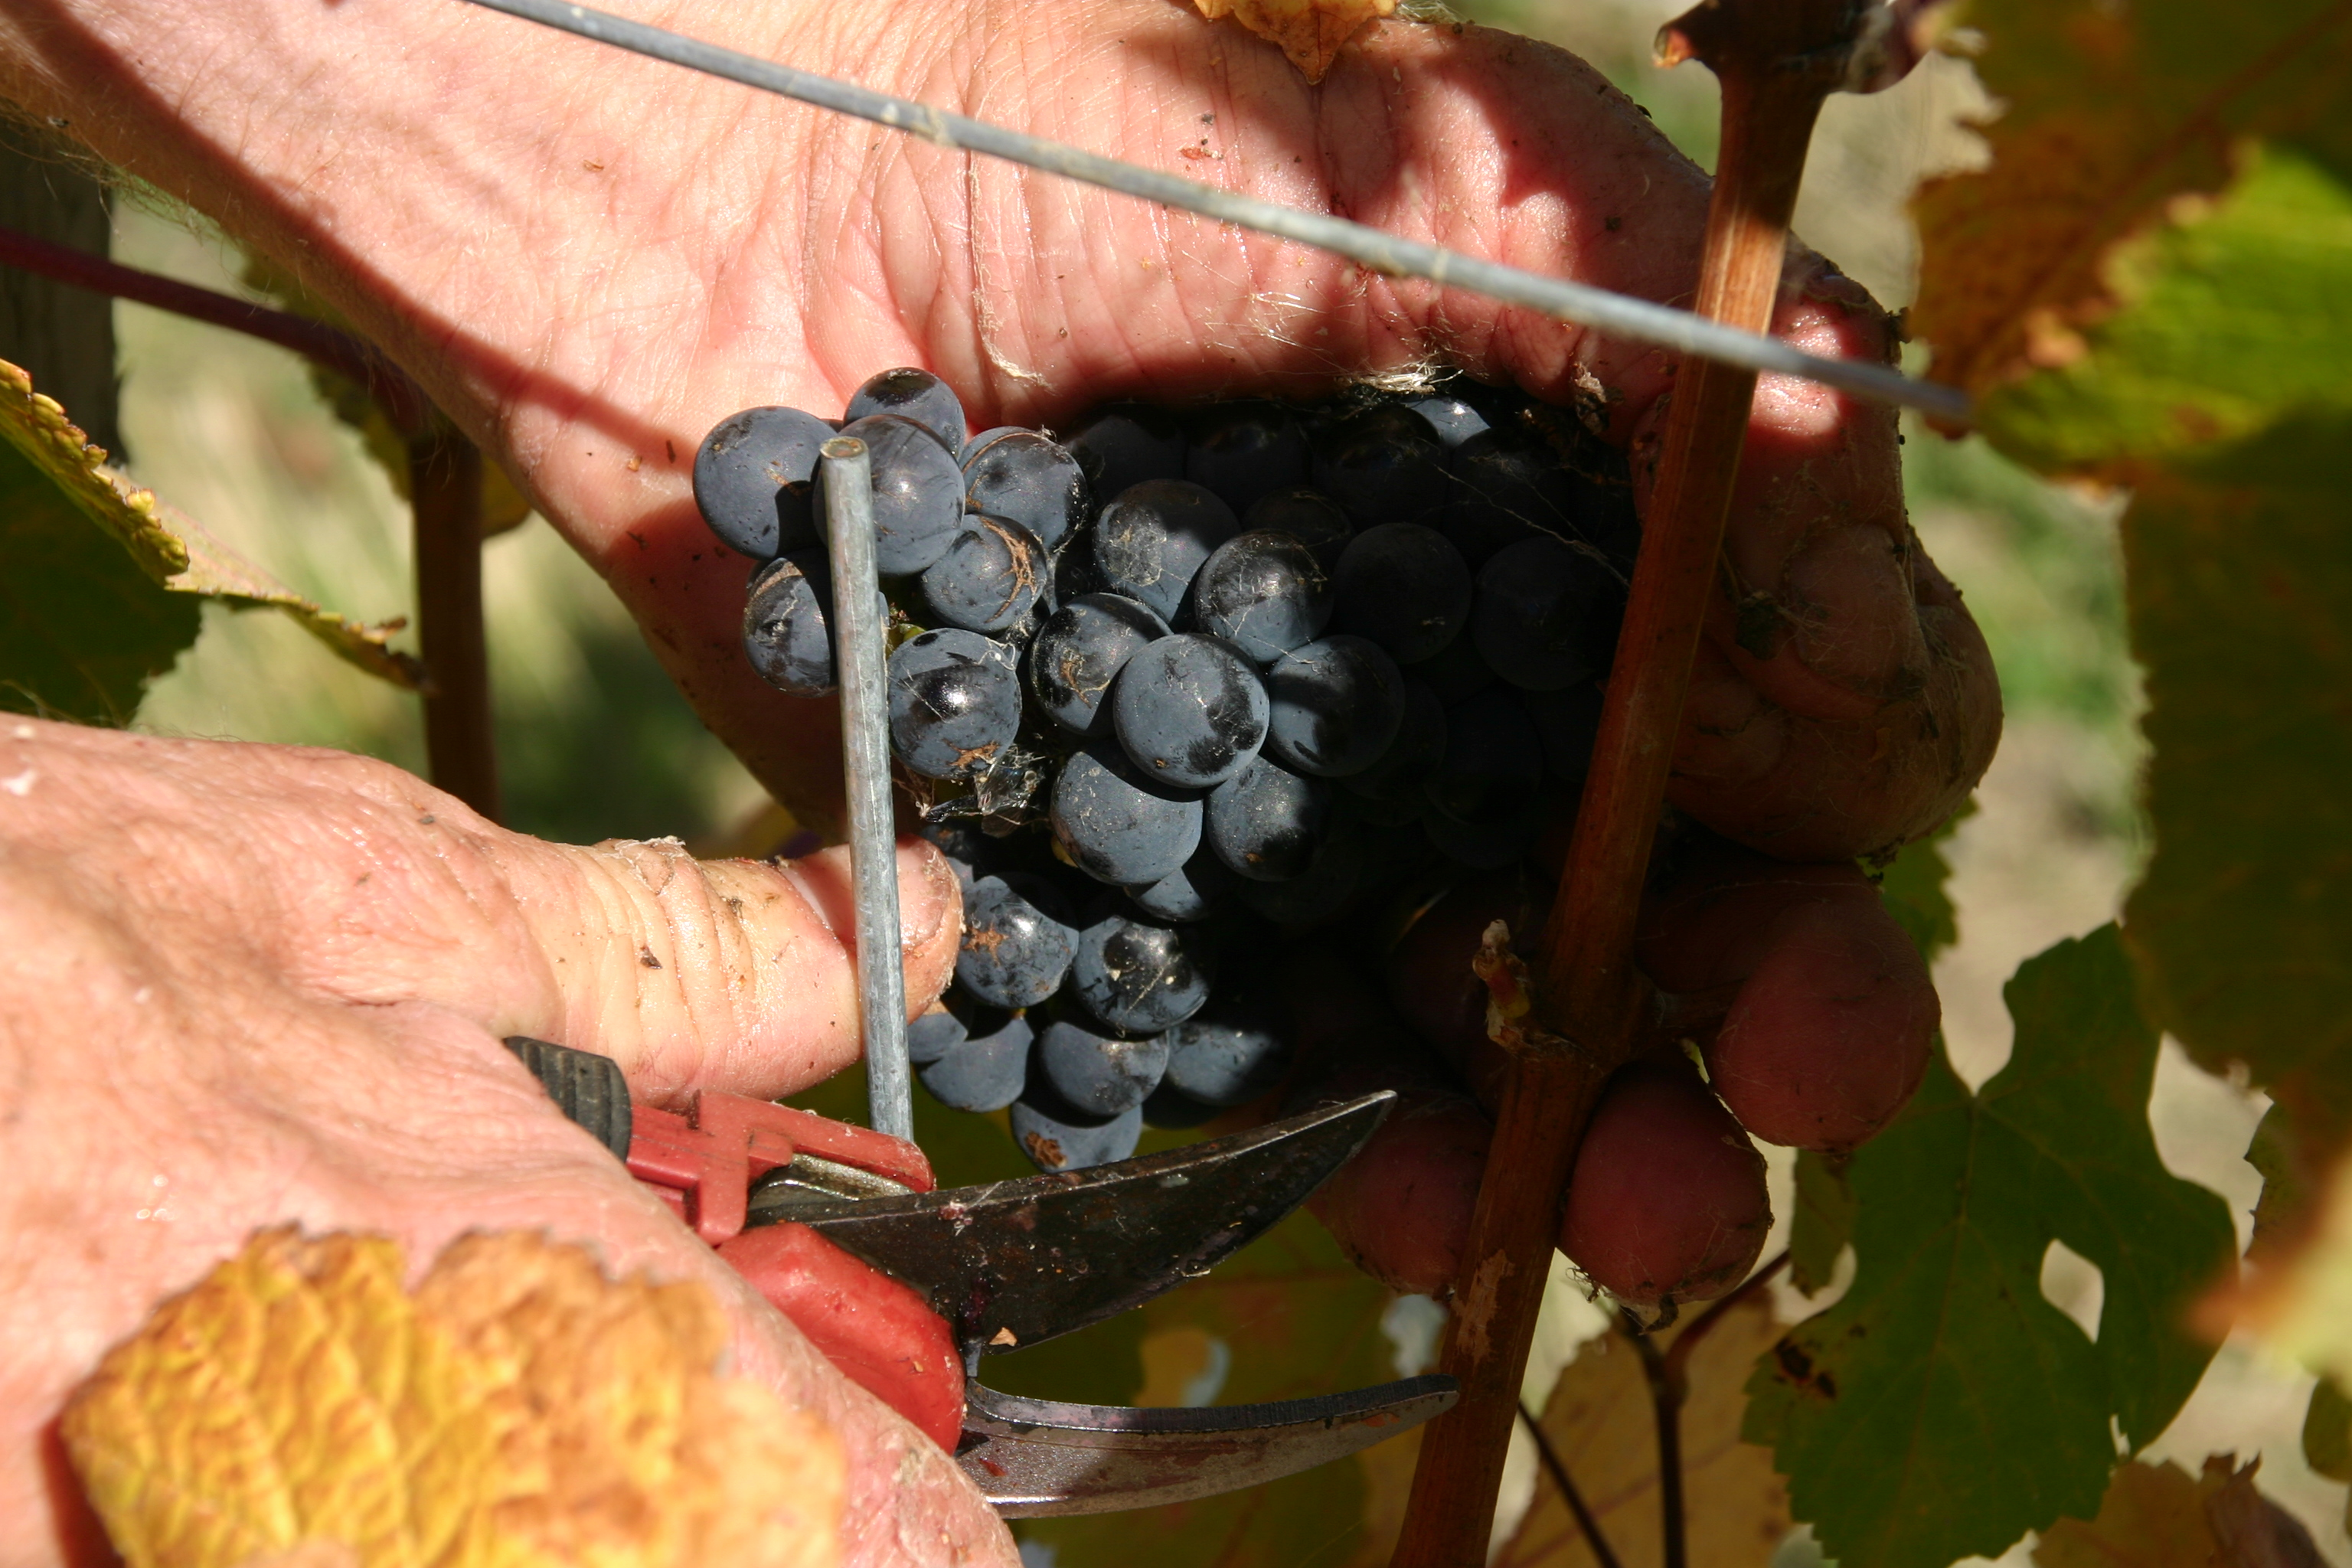 hand cutting grapes:2.png